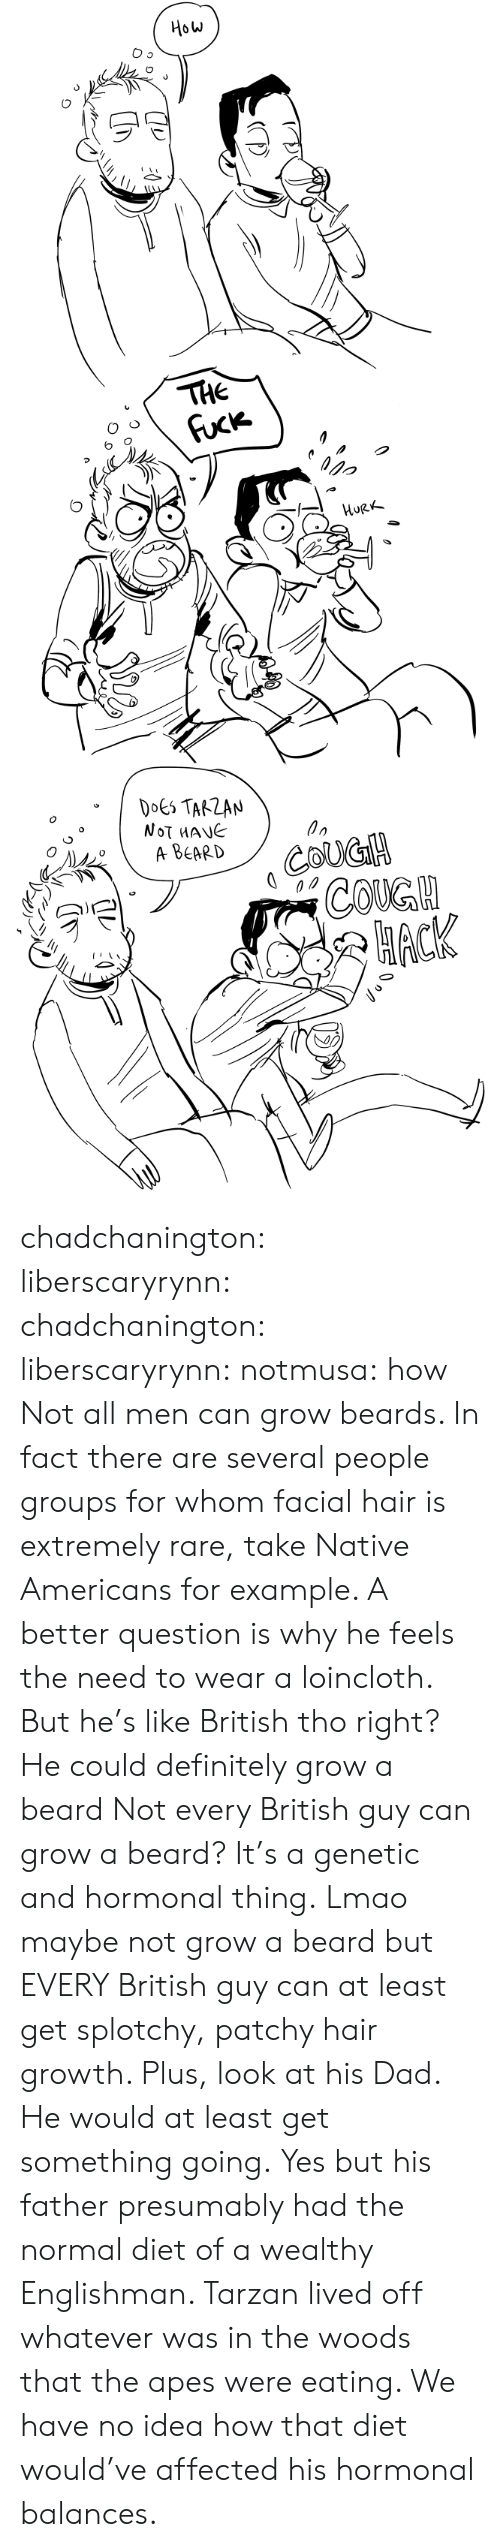 Growth: How  THE  Fuck  орo  HURK  DOES TARZAN  NOT MANE  A ВЕARD  COUGH  СOKGH  НАСК chadchanington:  liberscaryrynn:  chadchanington:  liberscaryrynn:  notmusa:  how  Not all men can grow beards. In fact there are several people groups for whom facial hair is extremely rare, take Native Americans for example. A better question is why he feels the need to wear a loincloth.  But he's like British tho right? He could definitely grow a beard  Not every British guy can grow a beard? It's a genetic and hormonal thing.  Lmao maybe not grow a beard but EVERY British guy can at least get splotchy, patchy hair growth. Plus, look at his Dad. He would at least get something going.  Yes but his father presumably had the normal diet of a wealthy Englishman. Tarzan lived off whatever was in the woods that the apes were eating. We have no idea how that diet would've affected his hormonal balances.